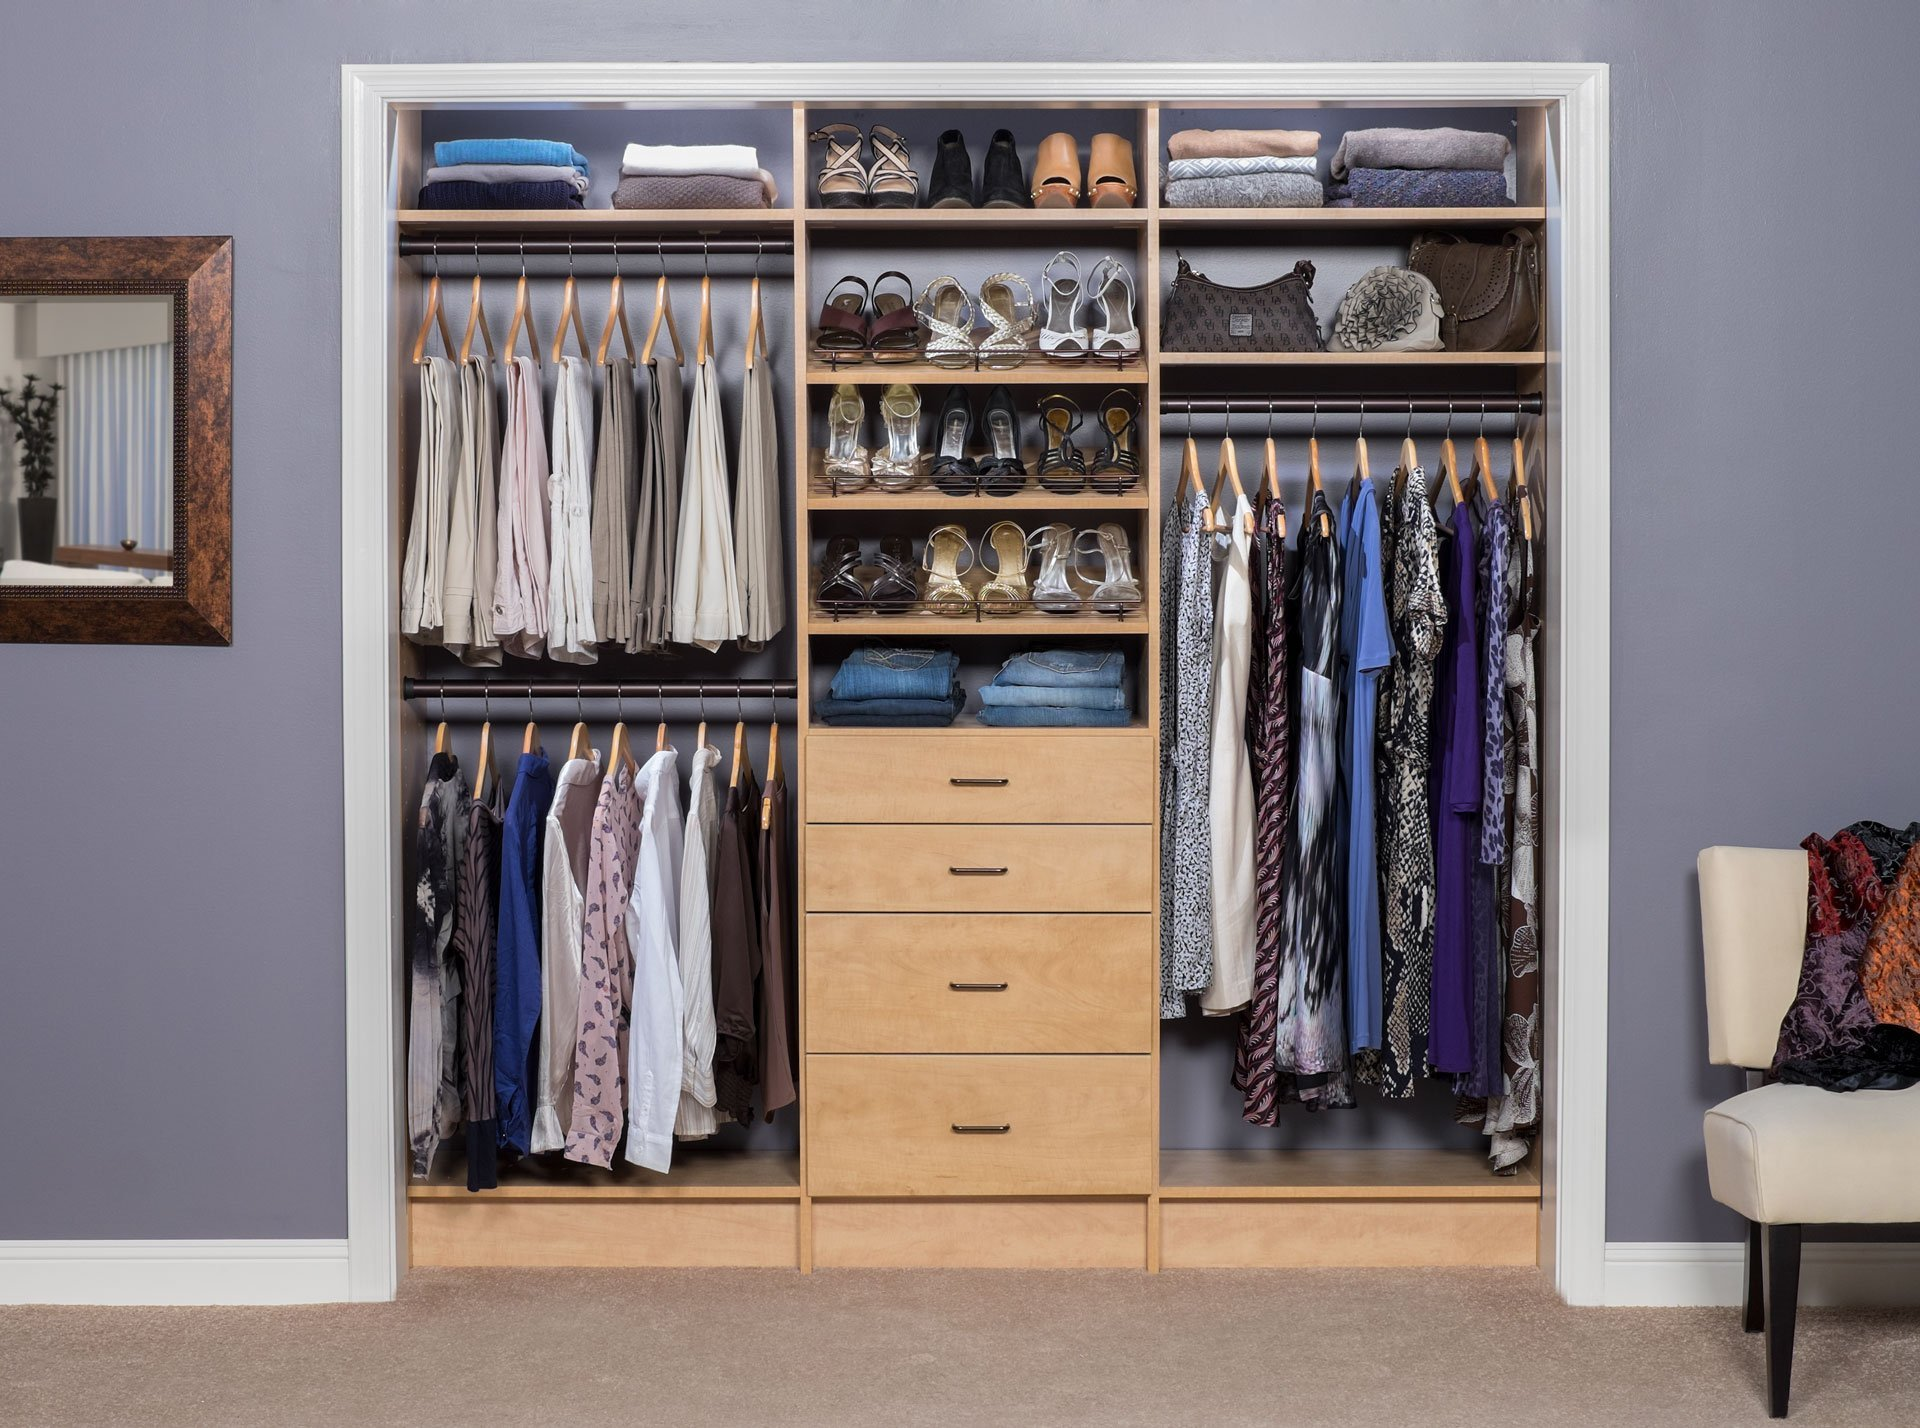 Reach In Custom Closet System With A Secret Finish